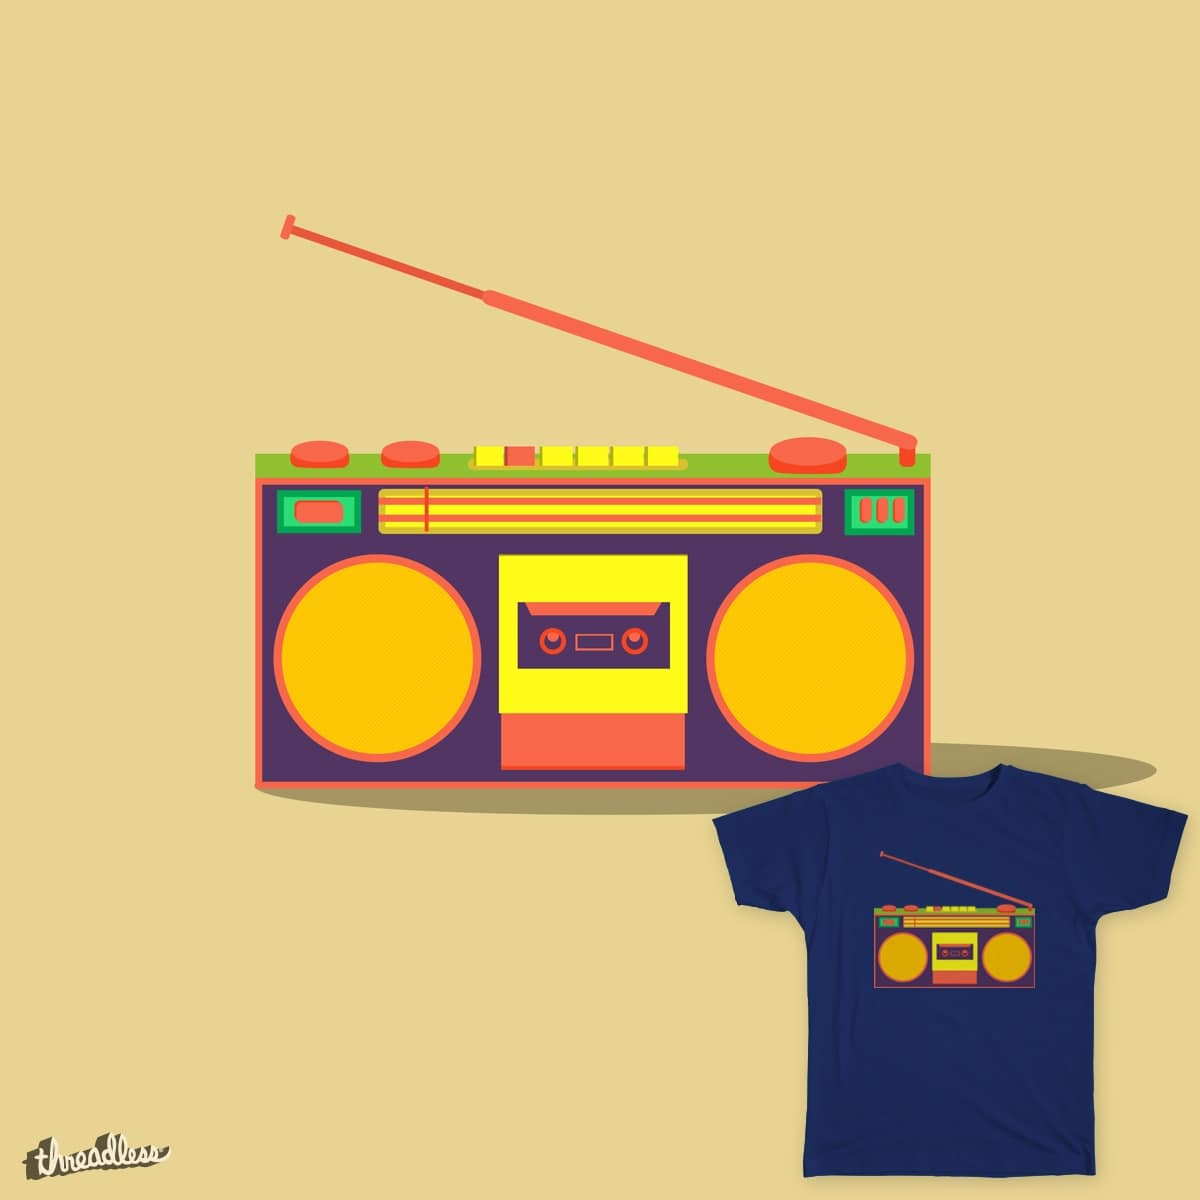 Devices - boombox by hotamr on Threadless